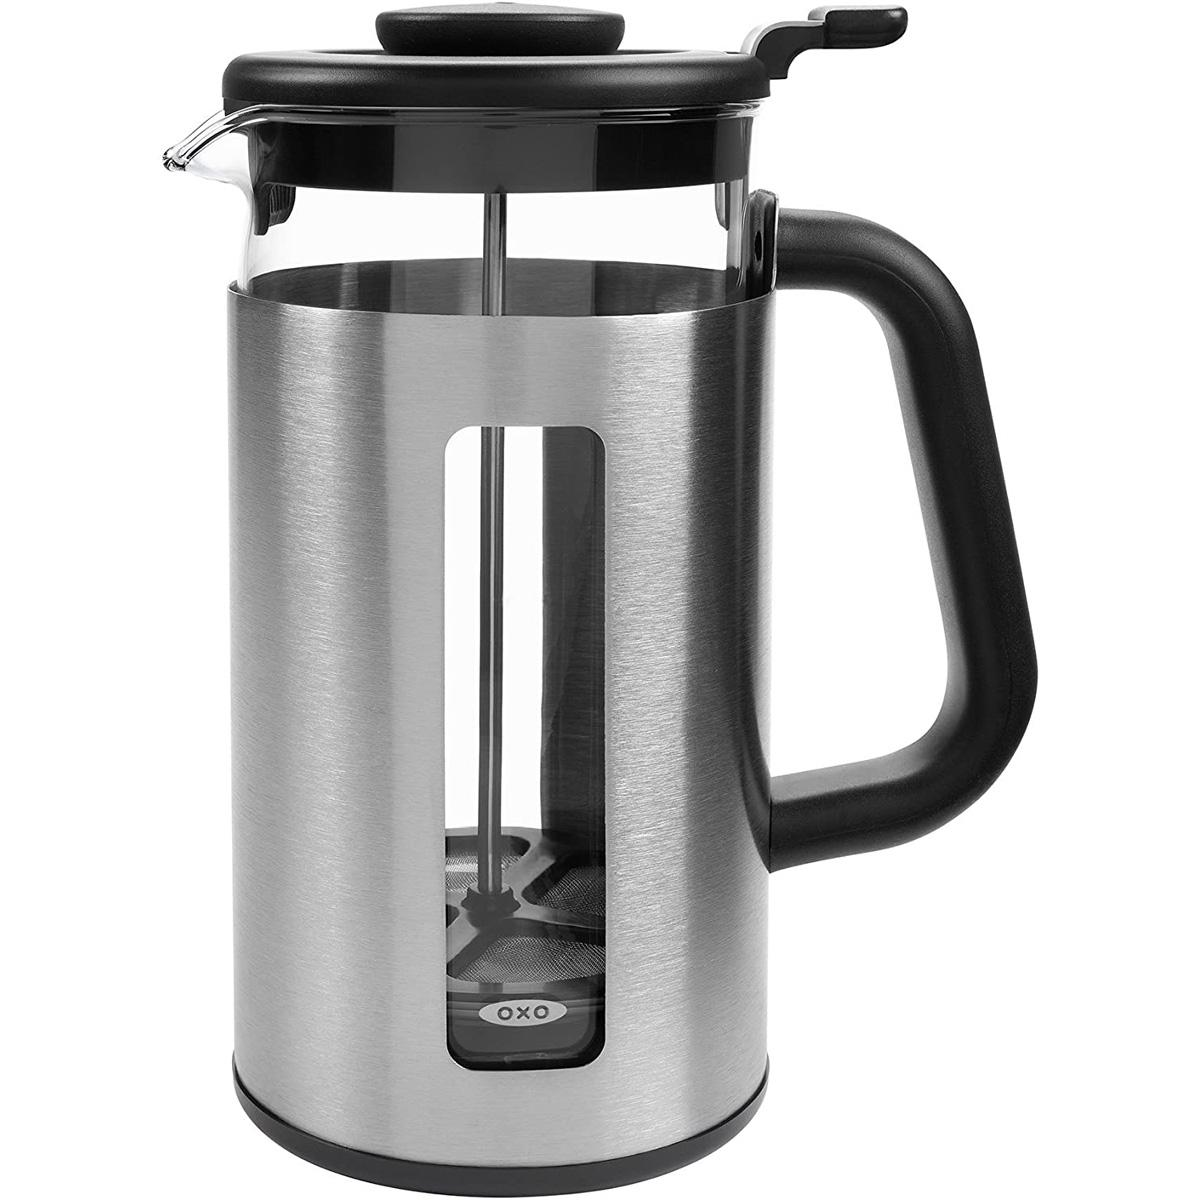 OXO Brew 8-Cup French Press Coffee Maker for $23.99 Shipped